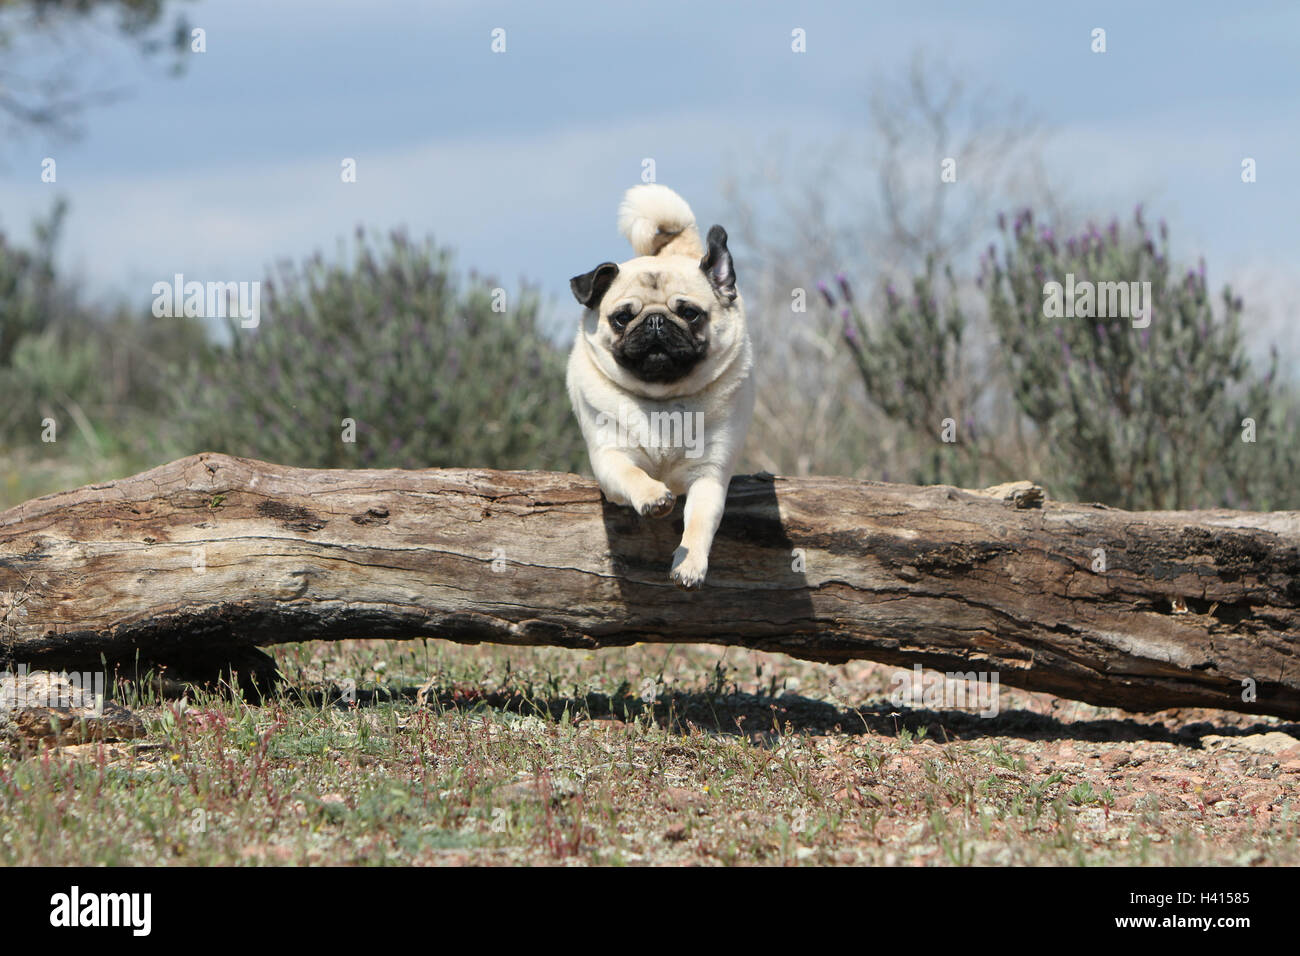 Dog Pug / Carlin / Mops adult fawn Grey dray jump jumping 'to jump' over a wood tree trunk a hurdle an obstacle - Stock Image